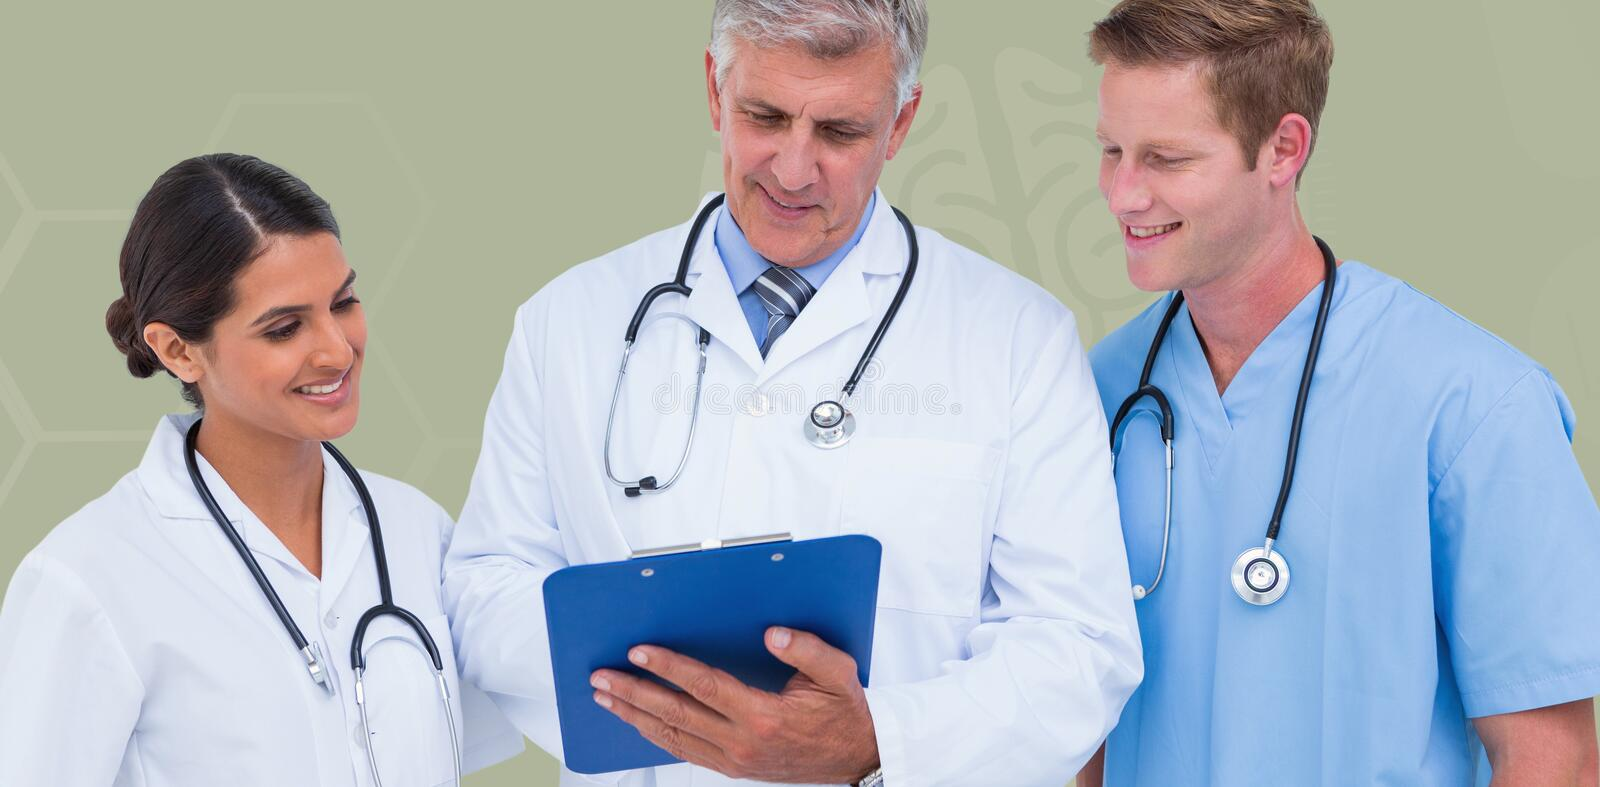 Composite image of doctor working with colleagues while holding writing pad. Doctor working with colleagues while holding writing pad against blue royalty free stock image